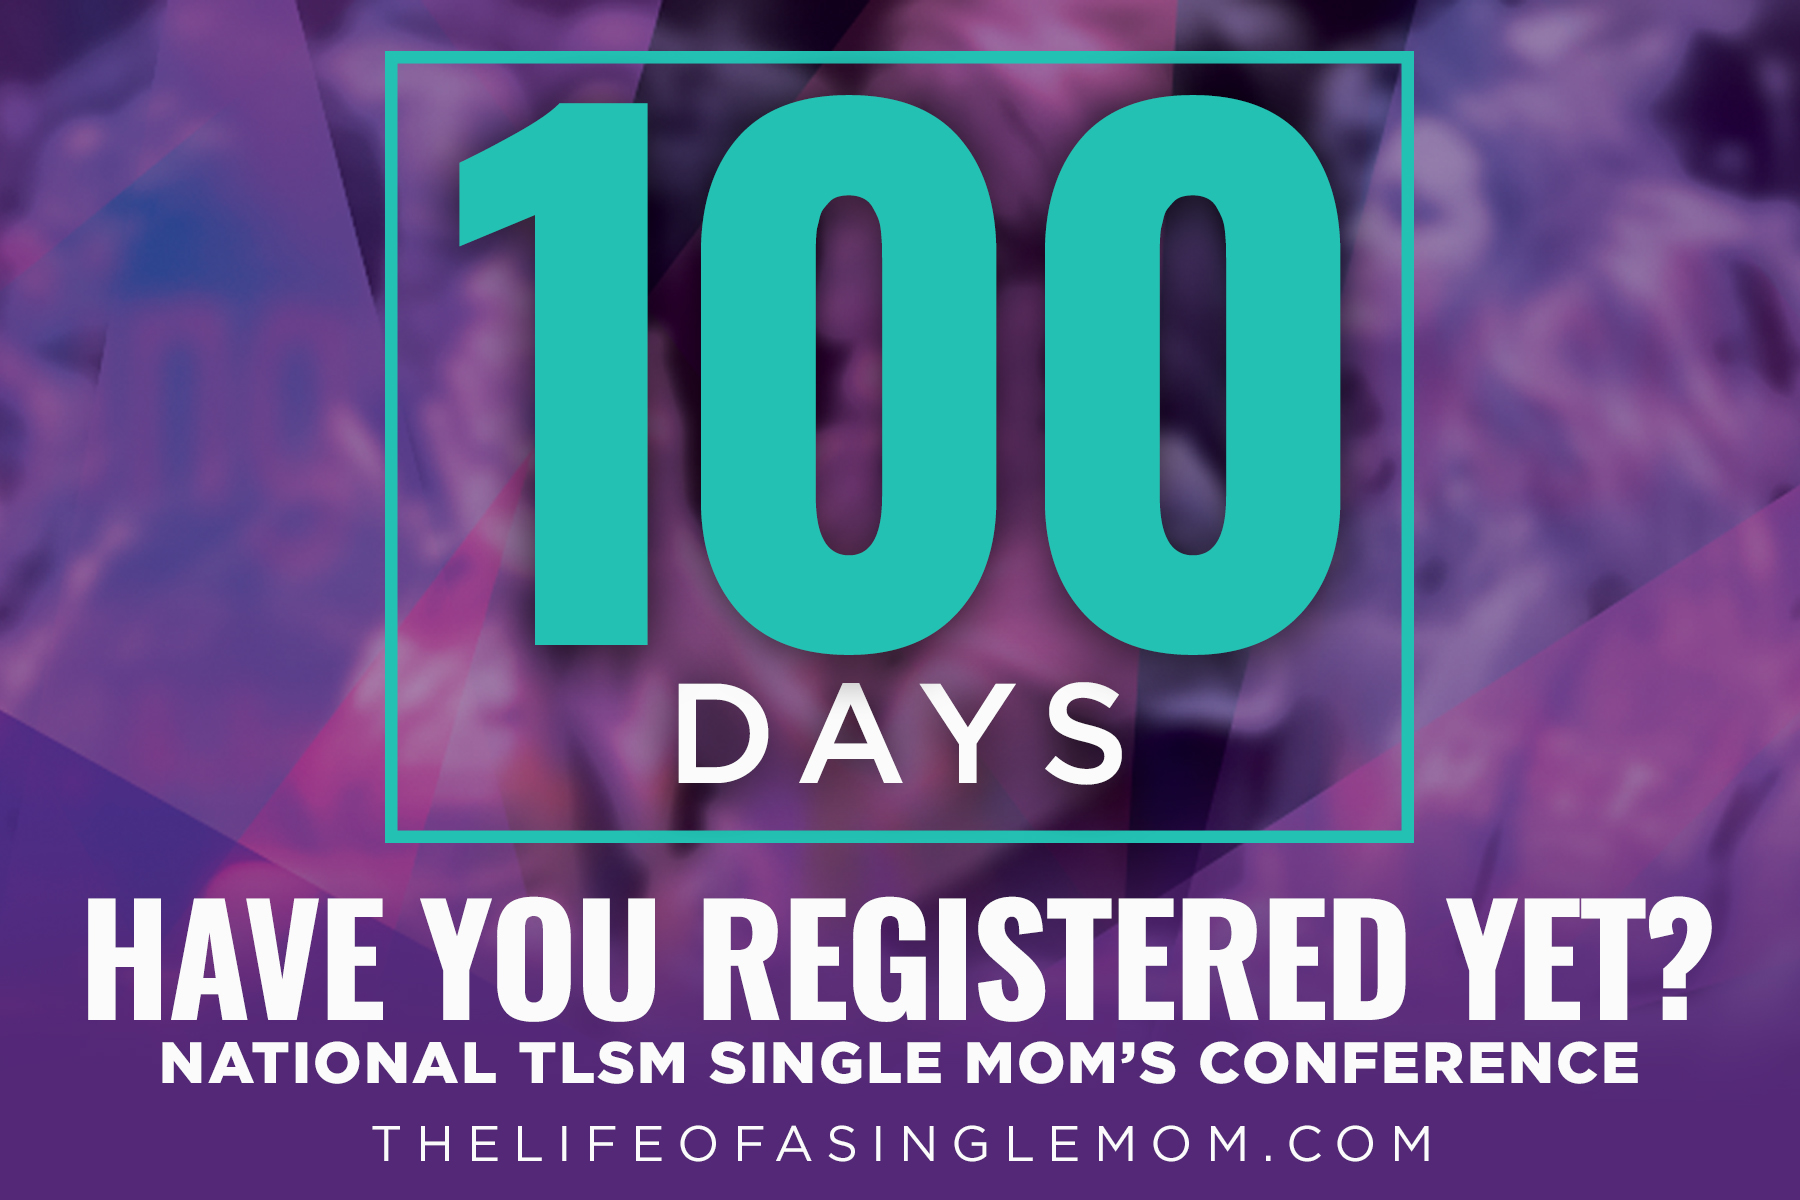 100 Days To 2018 National TLSM